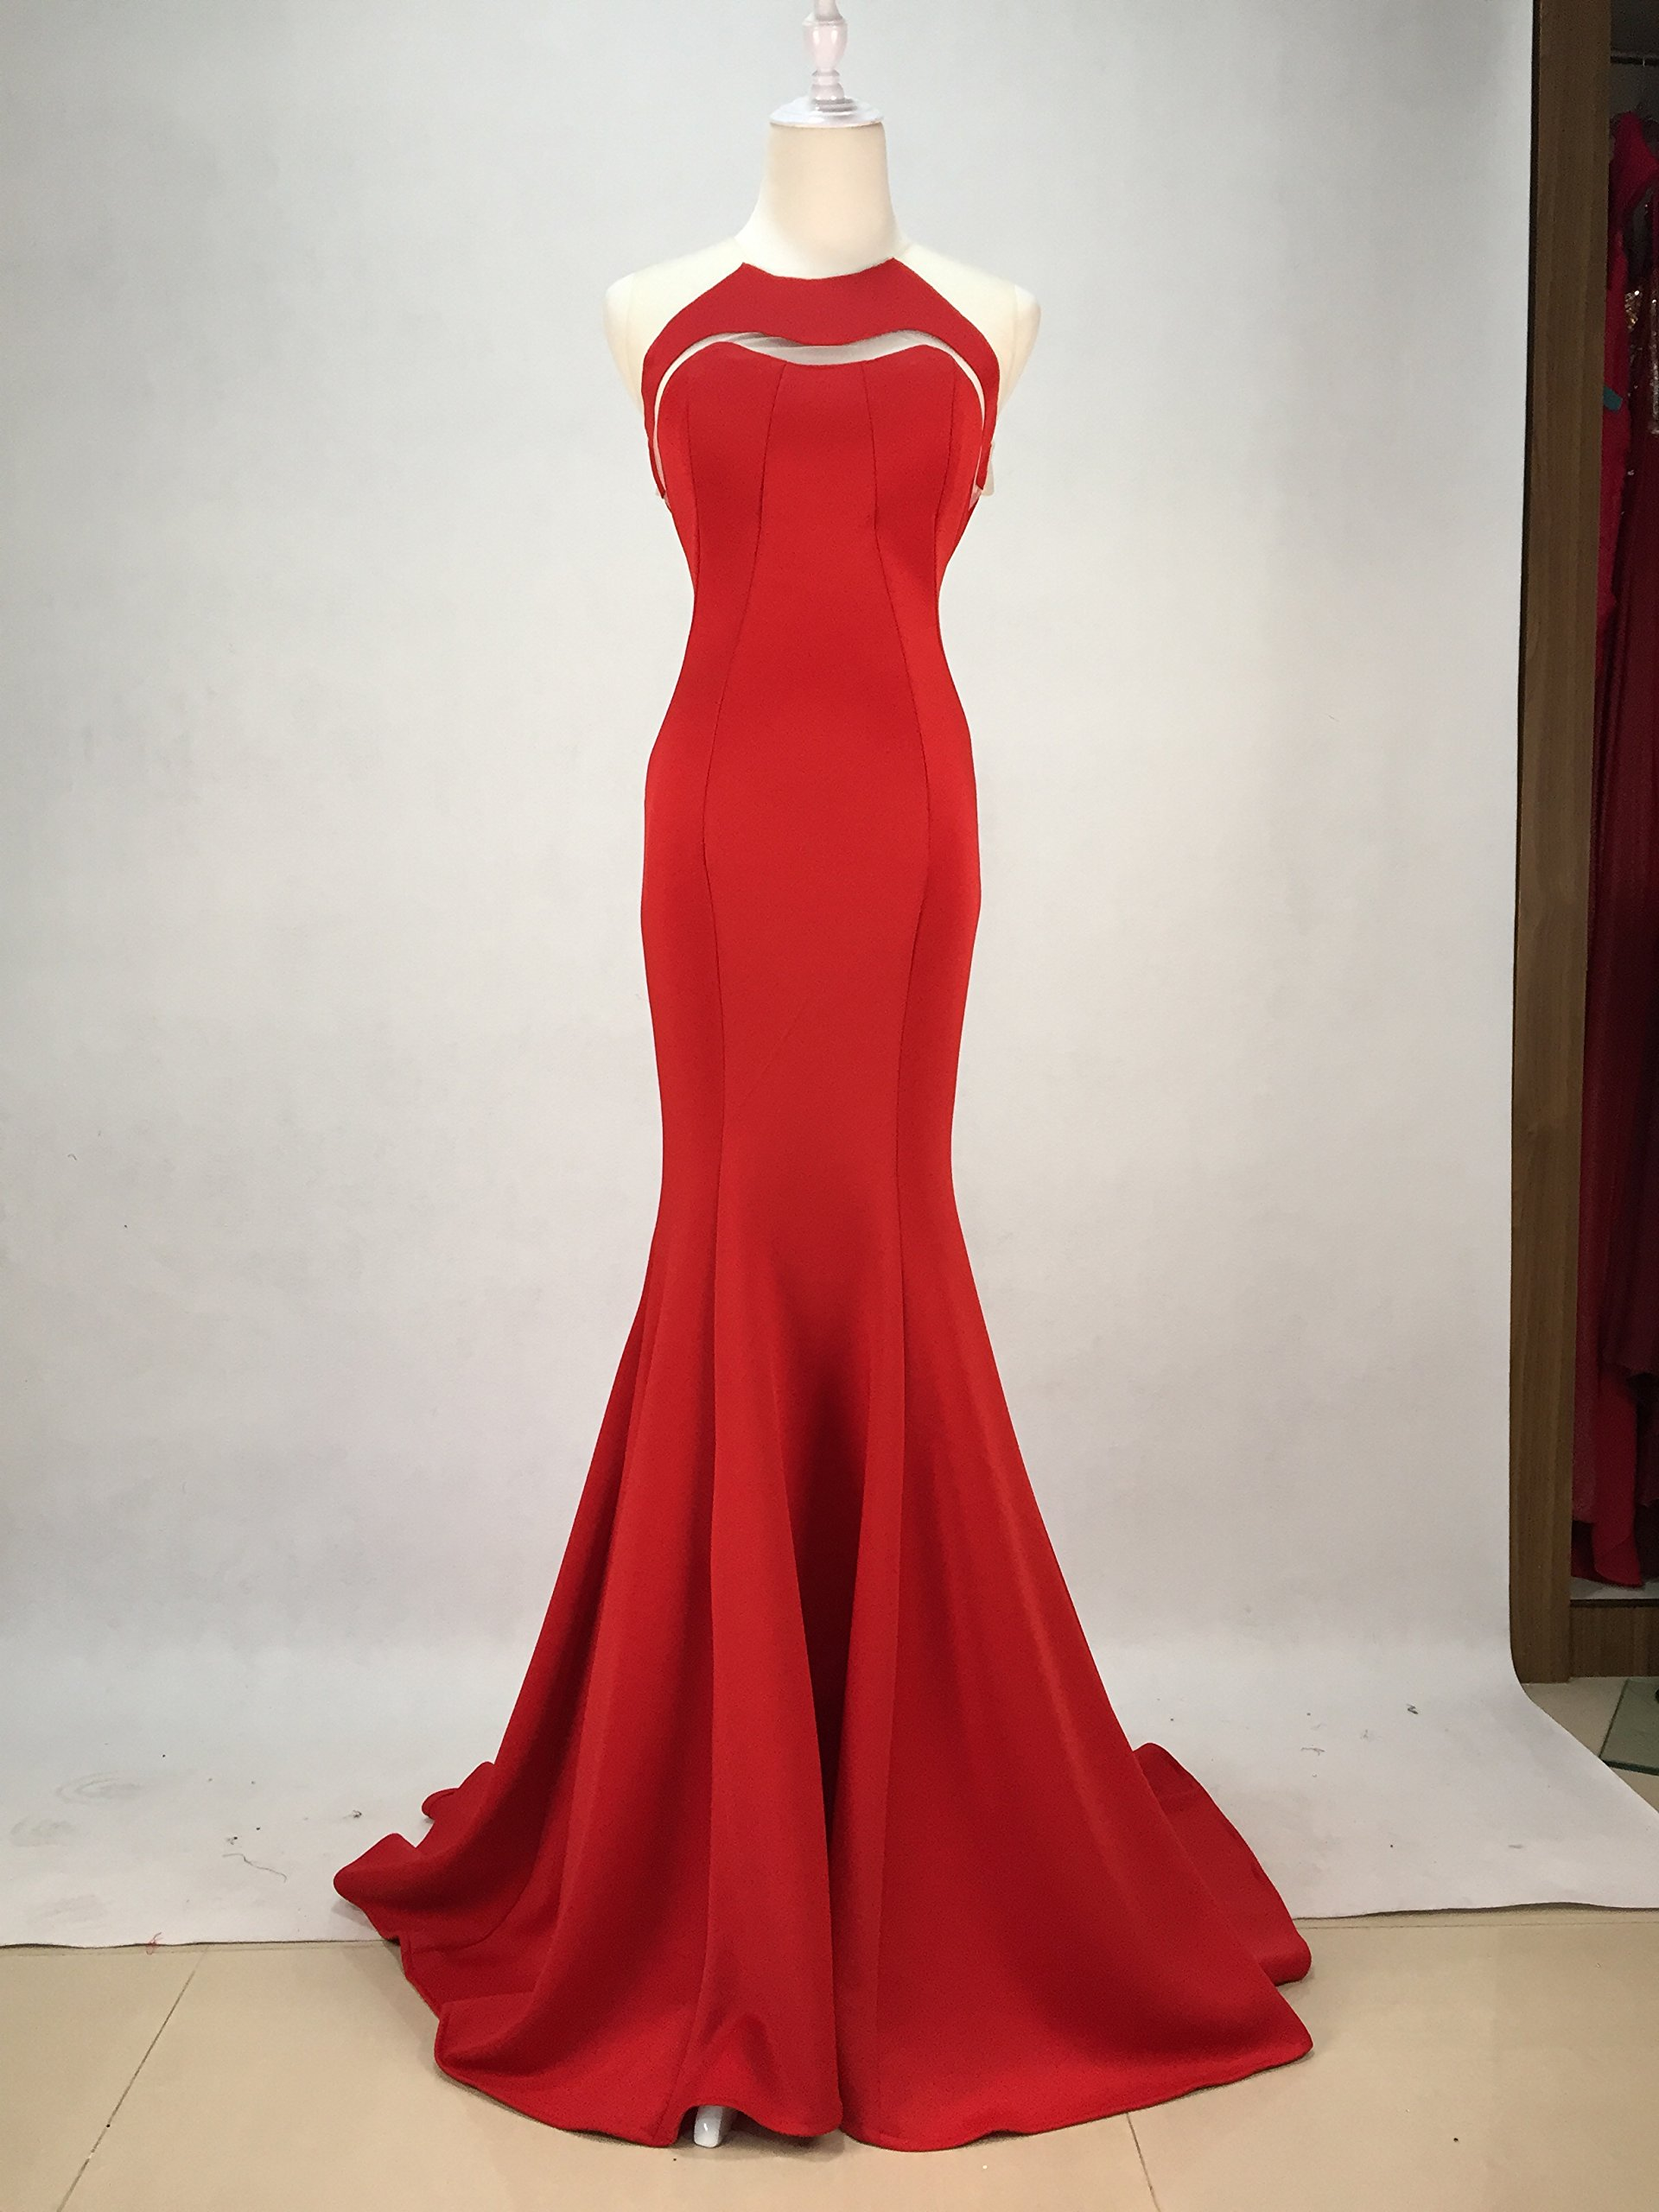 Gypsophila Women Fishtail Evening Dress Prom Gown 2016 (4, Red)